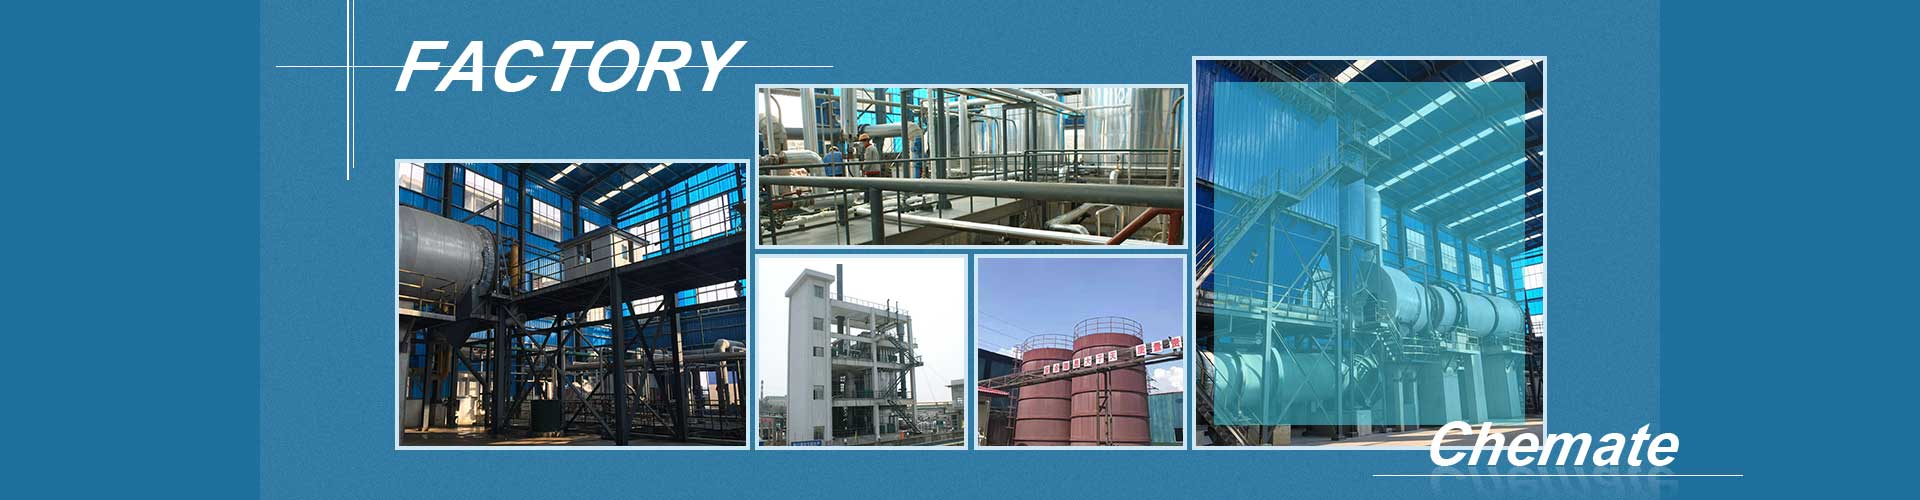 Chemate Technology Co.,Ltd Factory